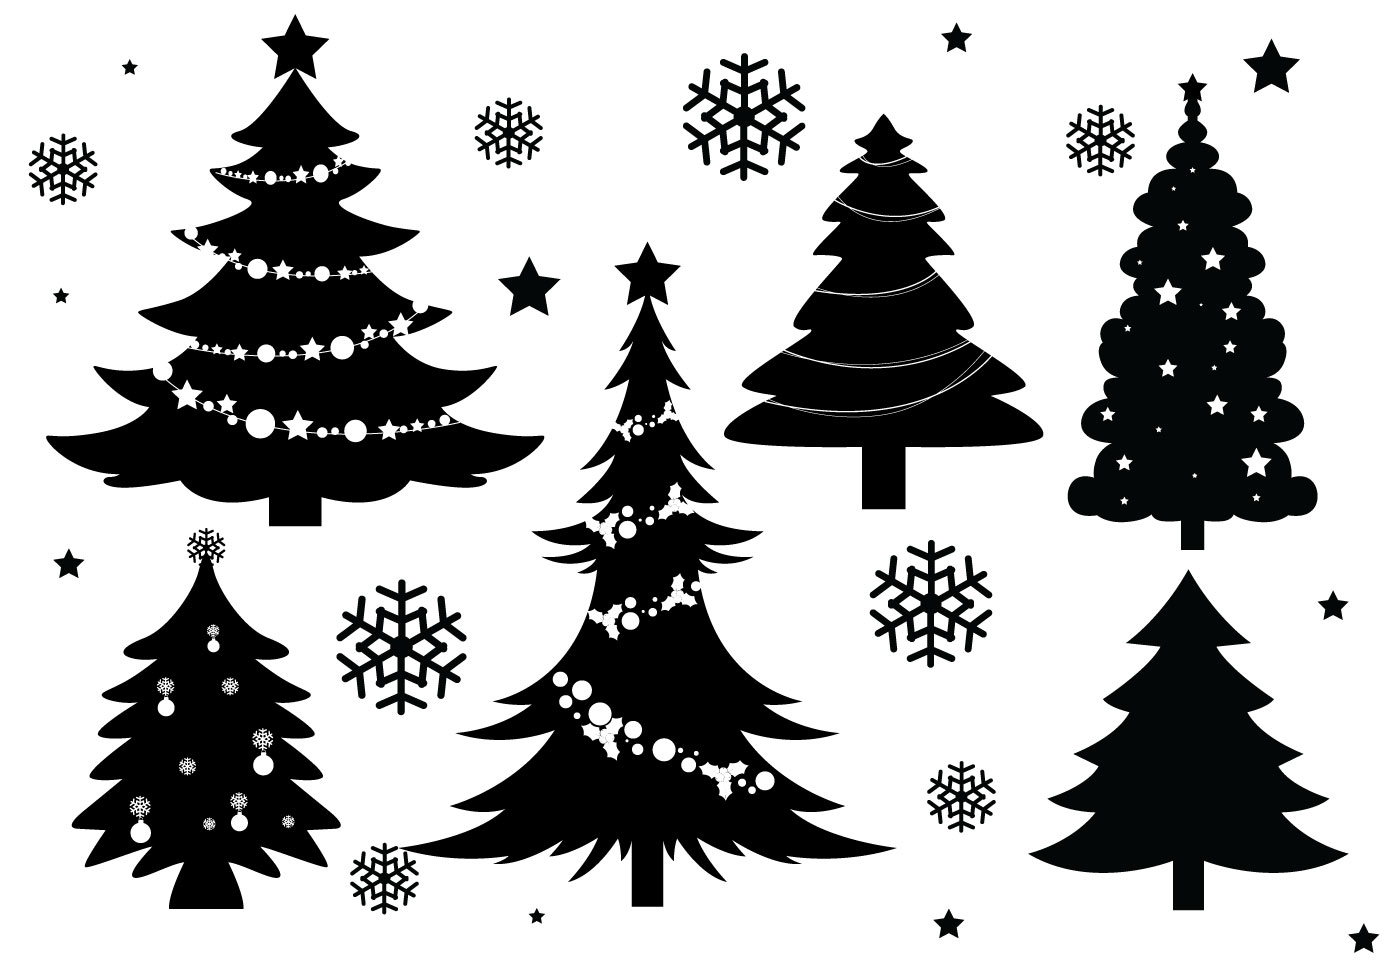 Vector Christmas Tree.Christmas Vector Art At Getdrawings Com Free For Personal